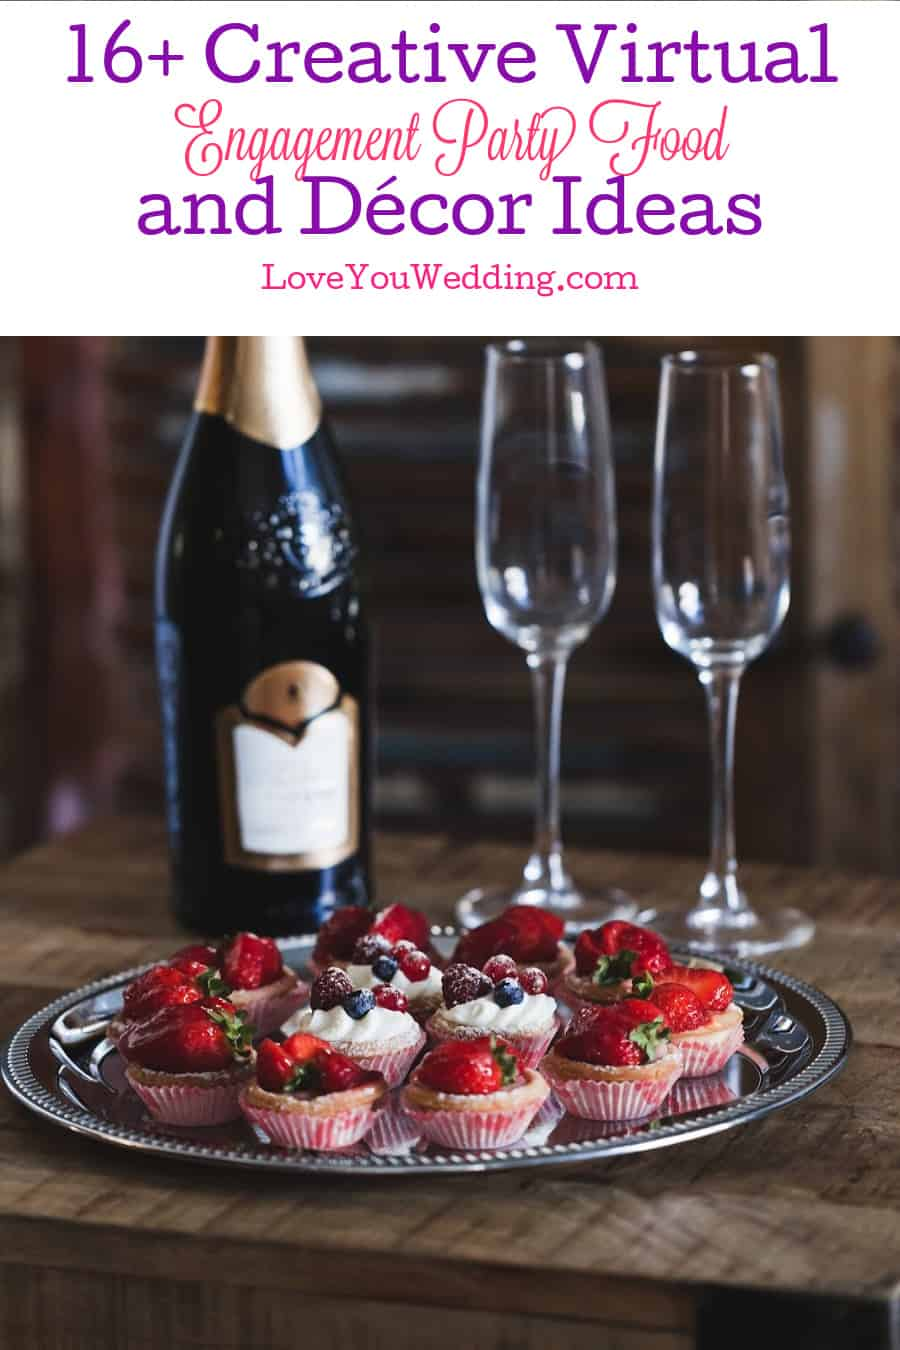 When it comes to virtual engagement party food and decor, you have to get really creative. We did the heavy lifting for you in our guide. Check it out!